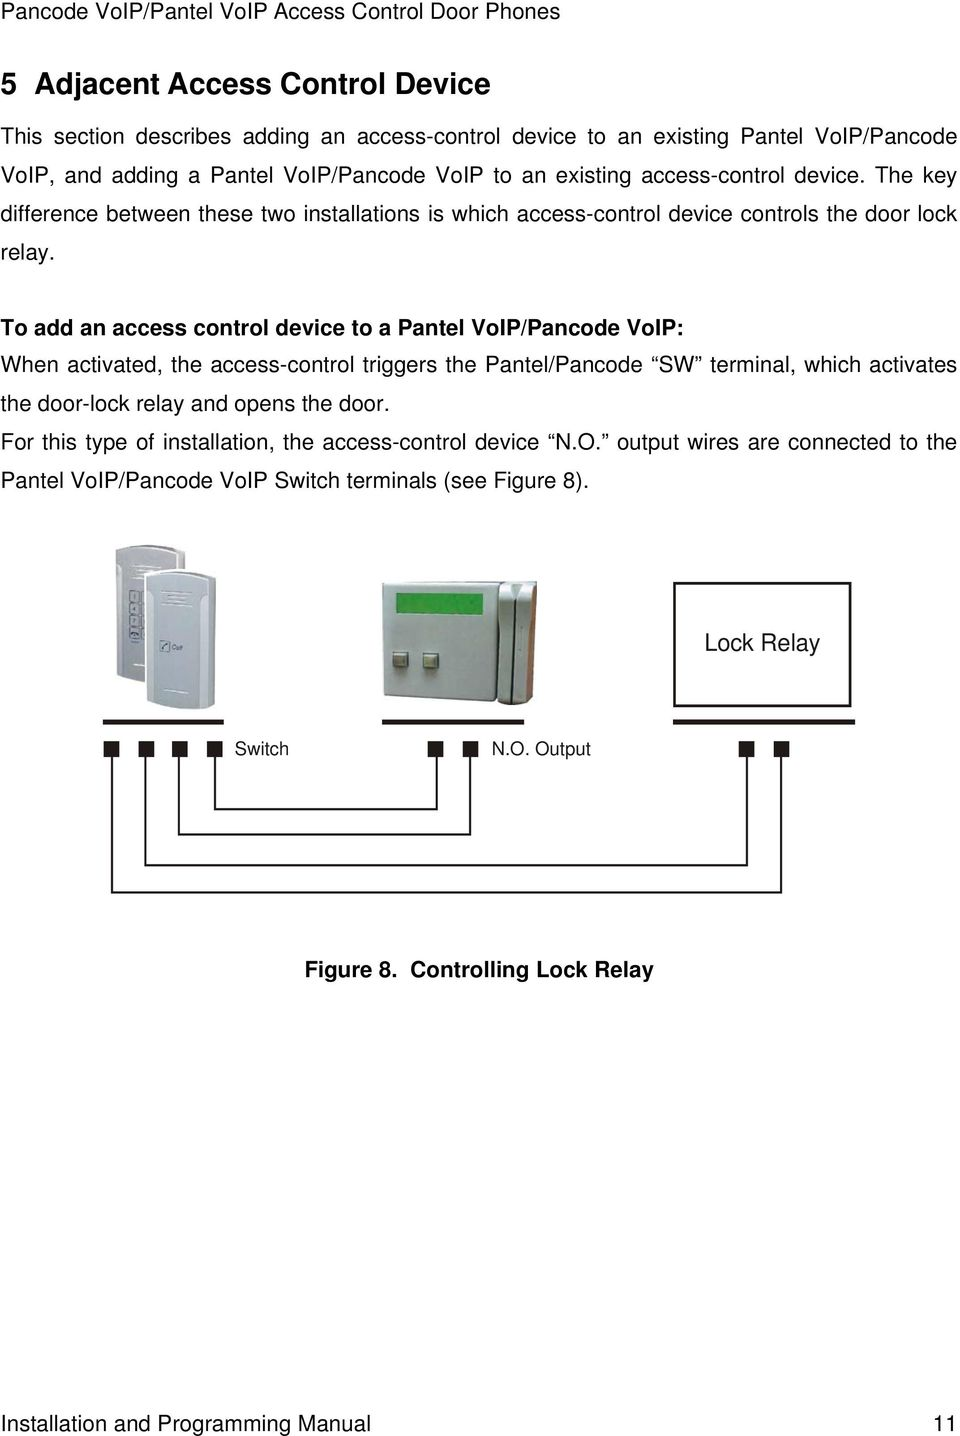 To add an access control device to a Pantel VoIP/Pancode VoIP: When activated, the access-control triggers the Pantel/Pancode SW terminal, which activates the door-lock relay and opens the